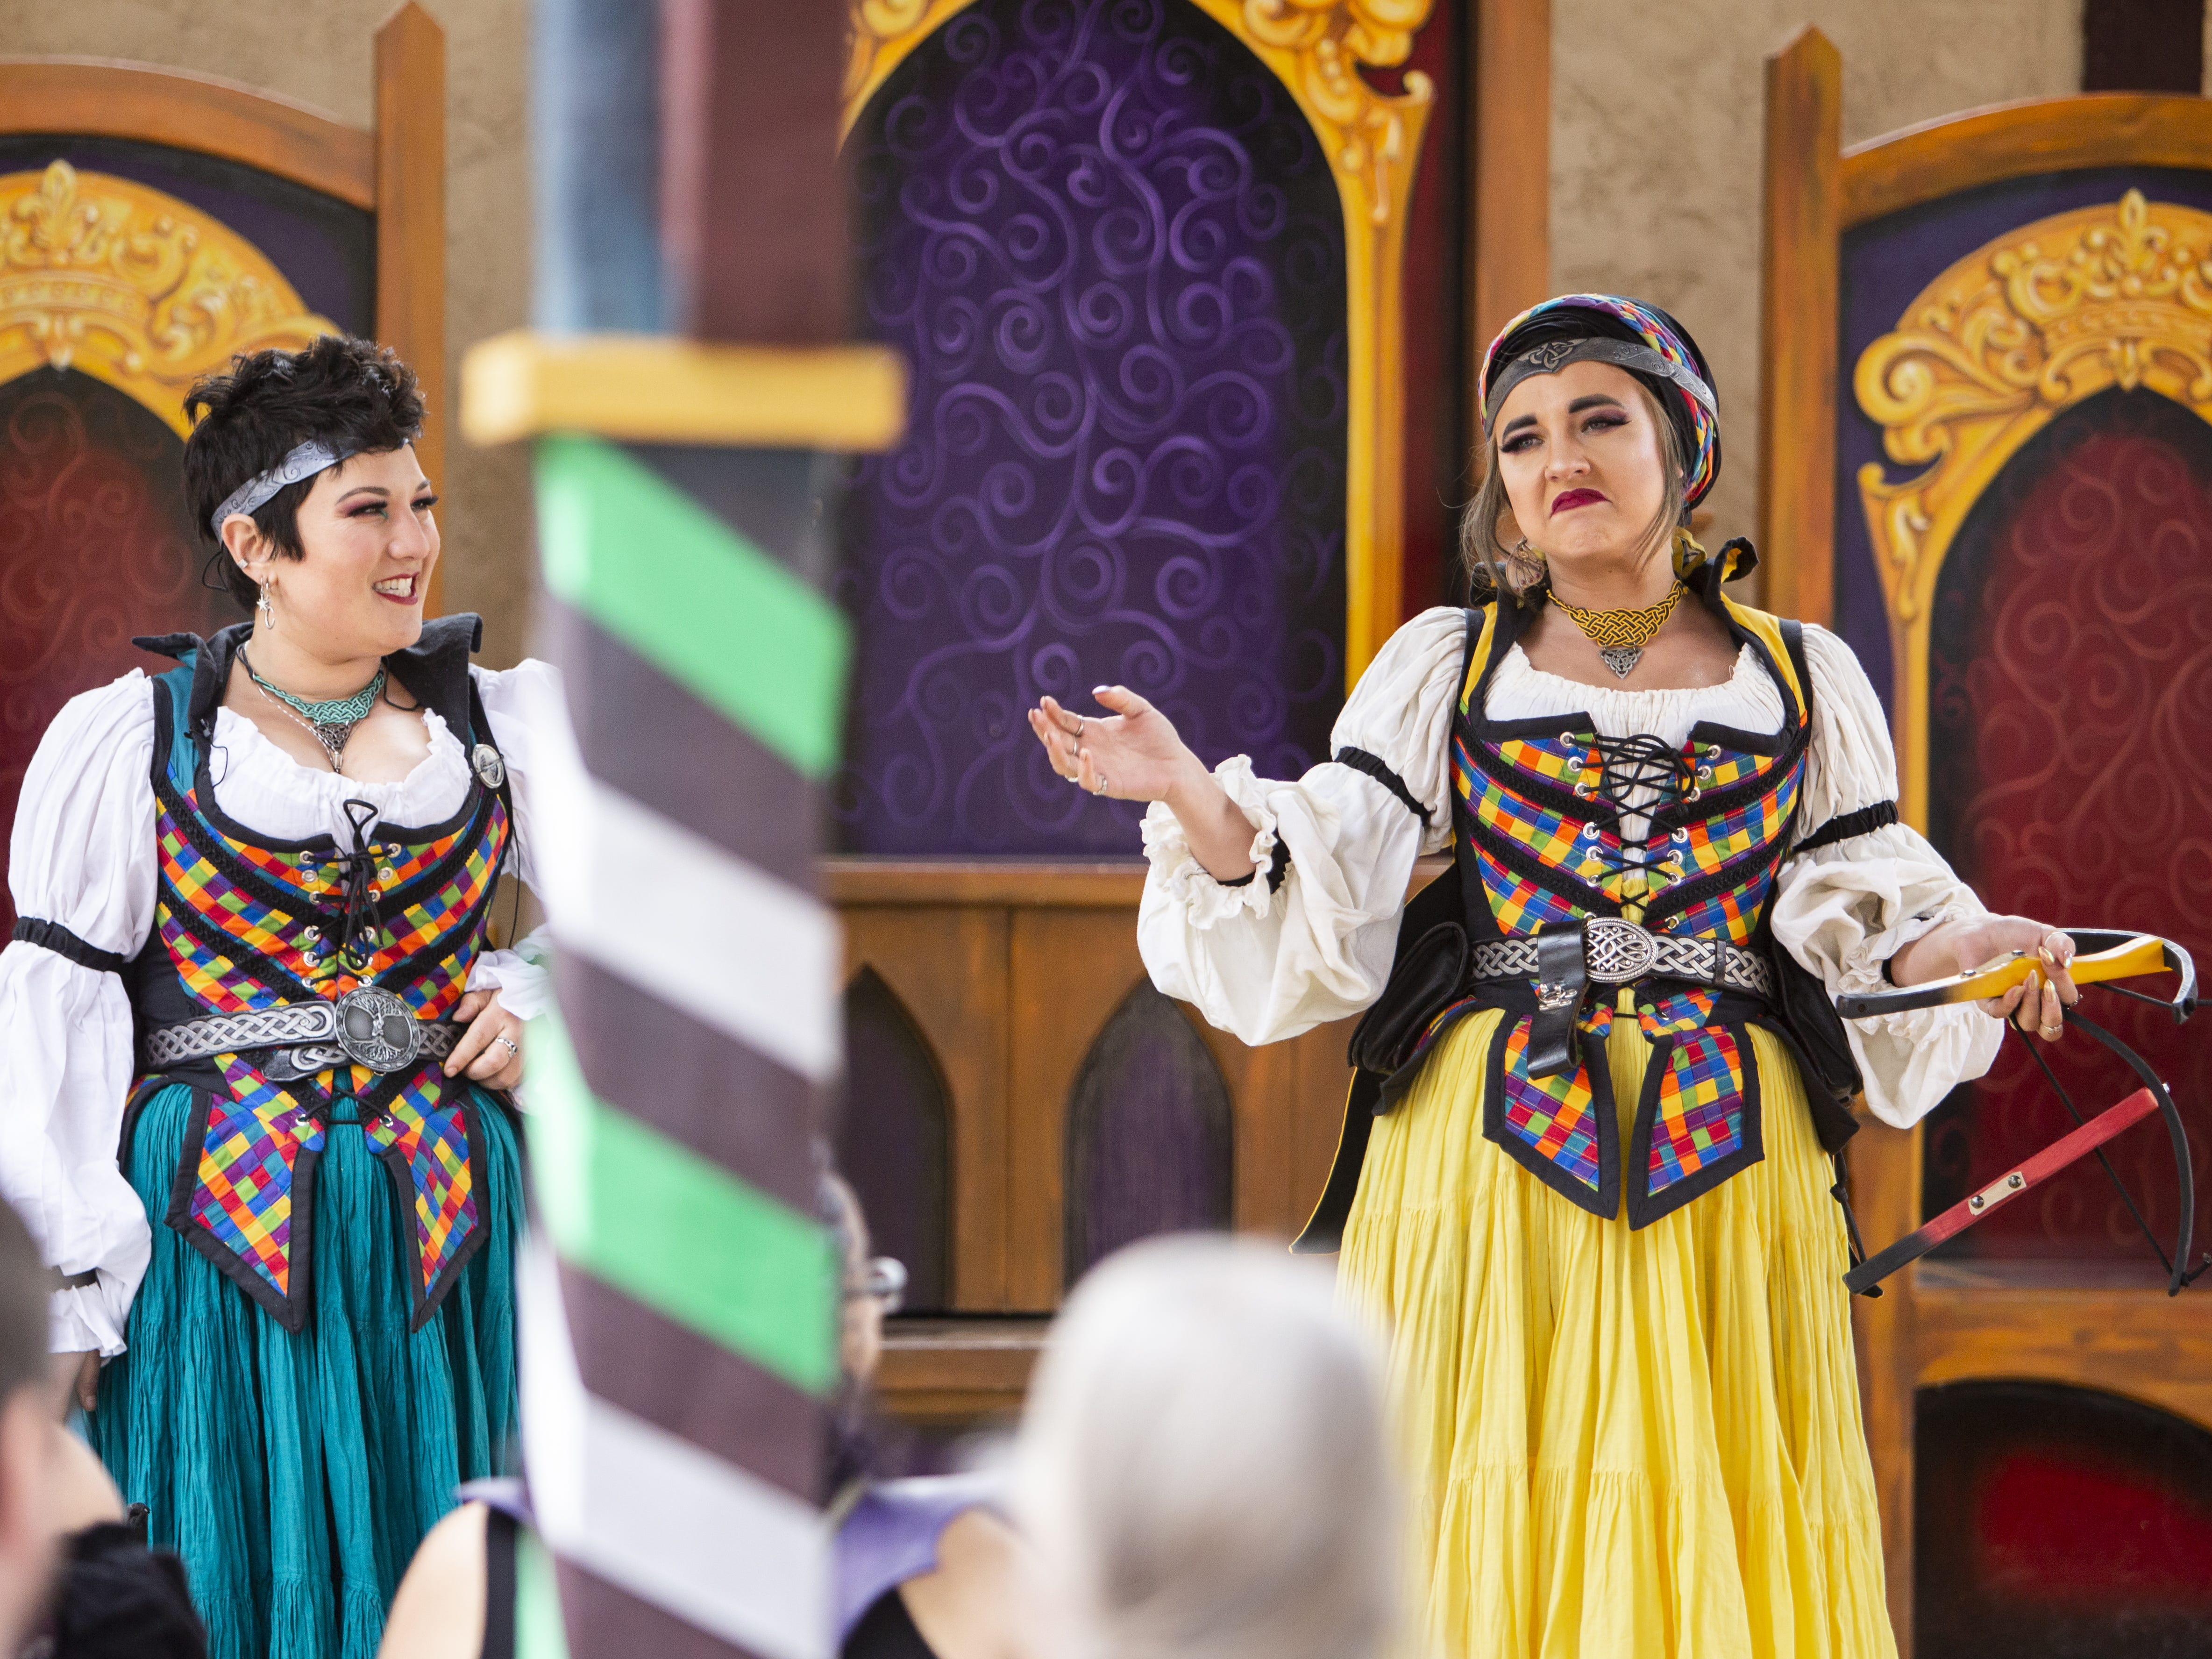 Women from the group Angels: Heroines in Disguise perform at the royal pavilion at the Arizona Renaissance Festival 2019 on Feb. 9, 2019 in Gold Canyon, Ariz.